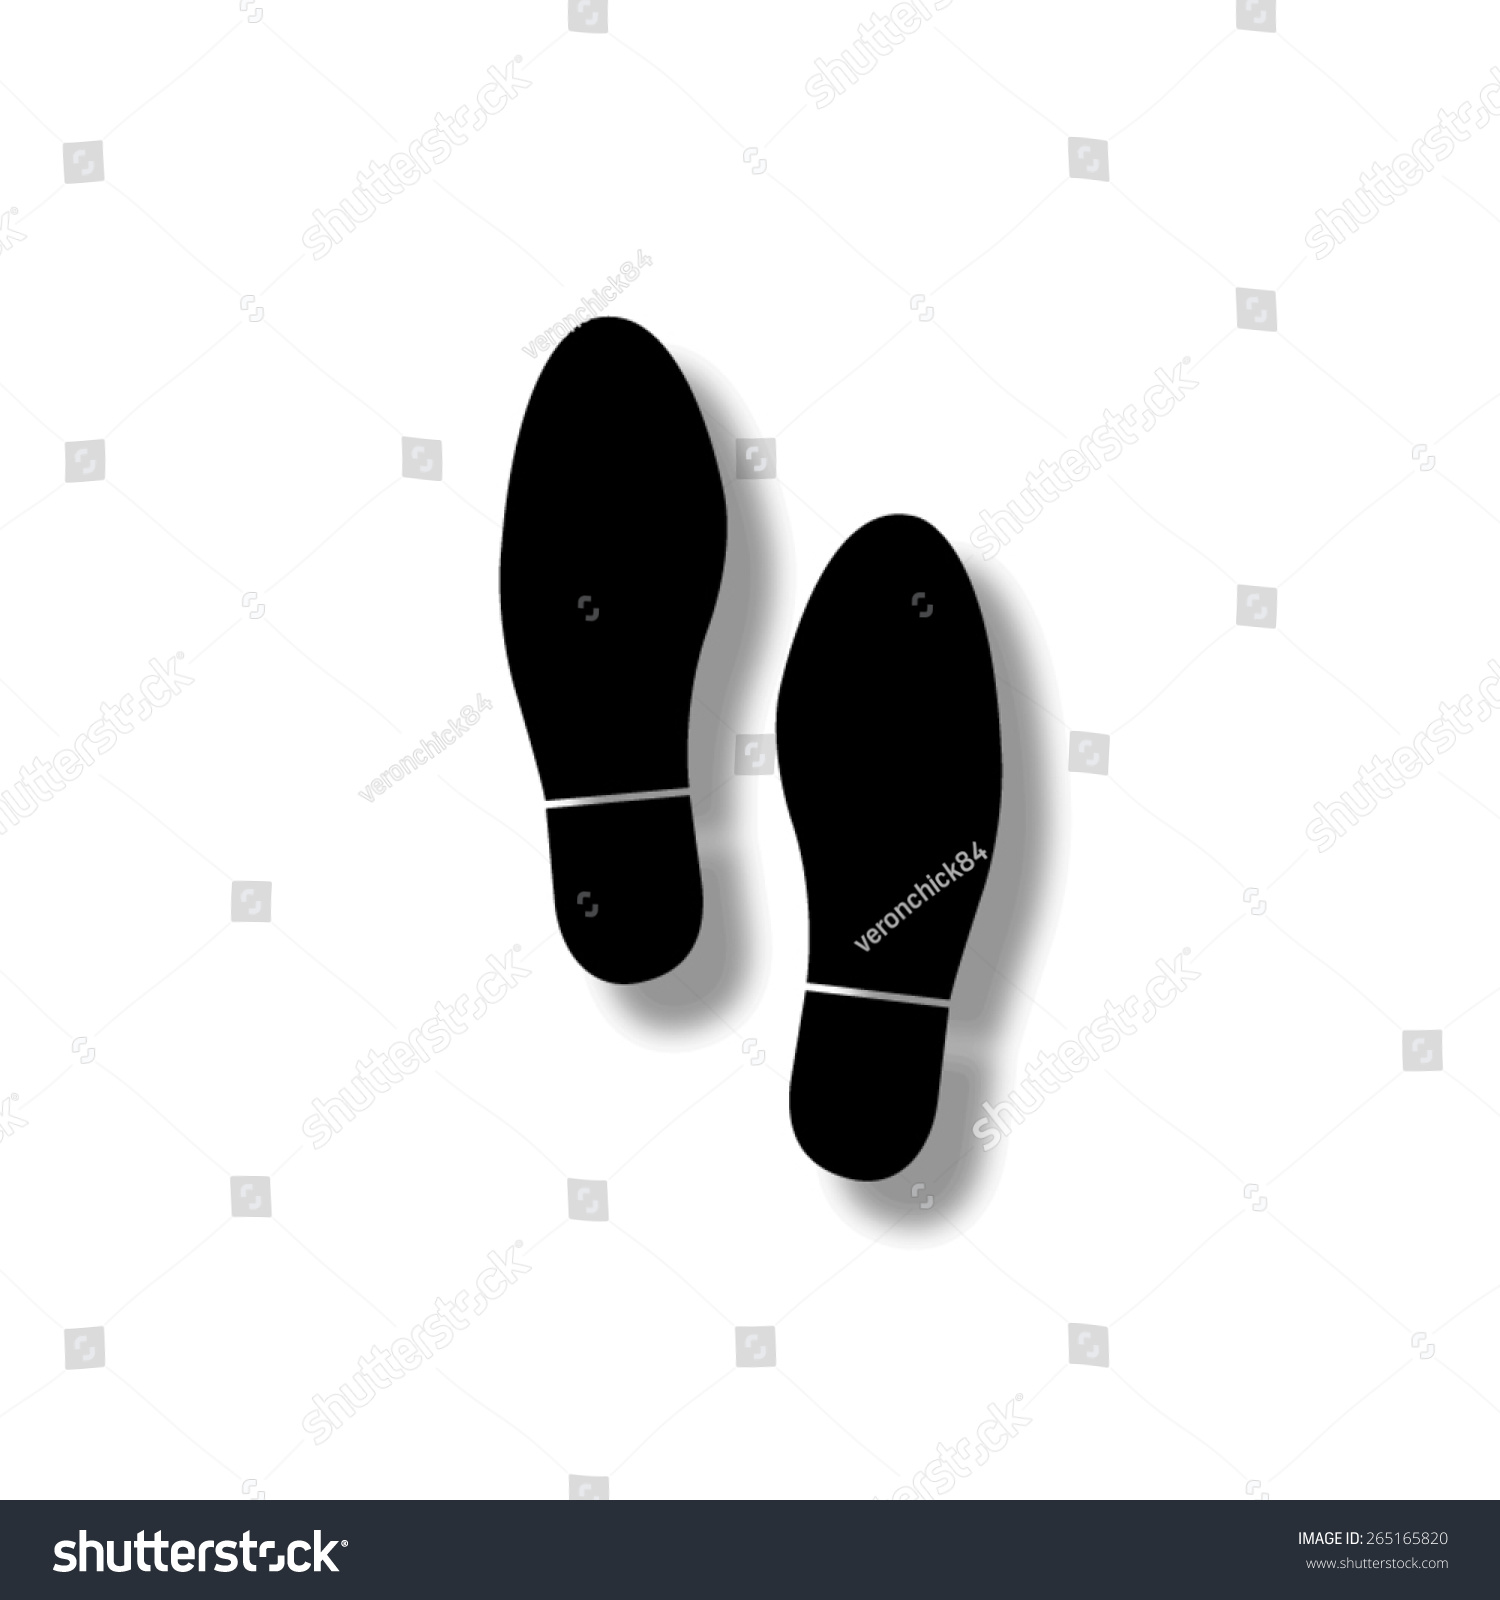 shoe print vector icon shadow stock vector 2018 265165820 rh shutterstock com running shoe print vector free shoe print vector free